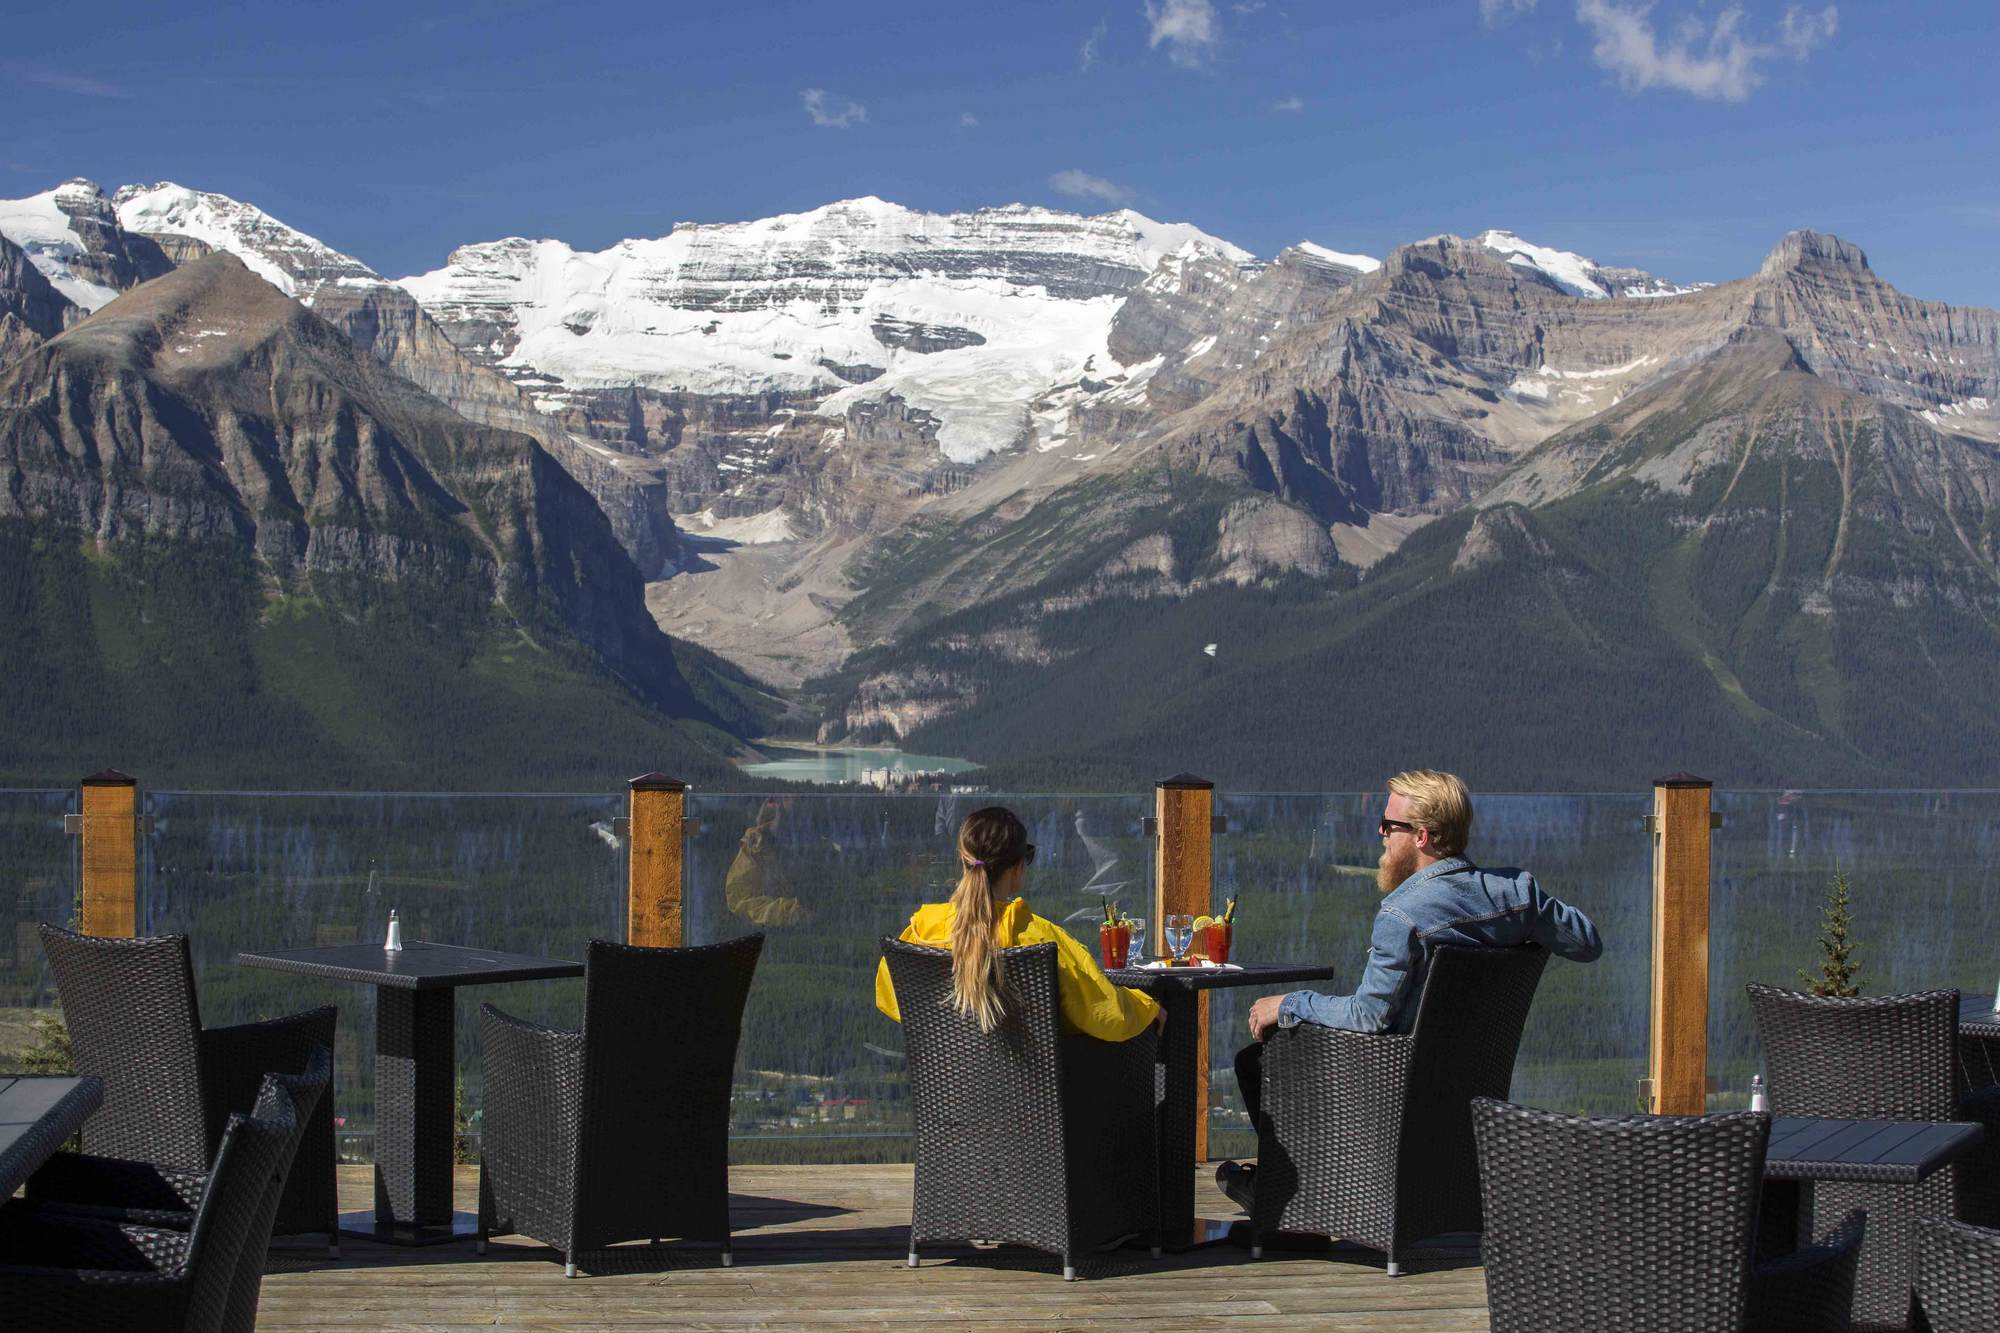 Whitehorn Bistro, Lake Louise Sightseeing Lift, Banff National Park